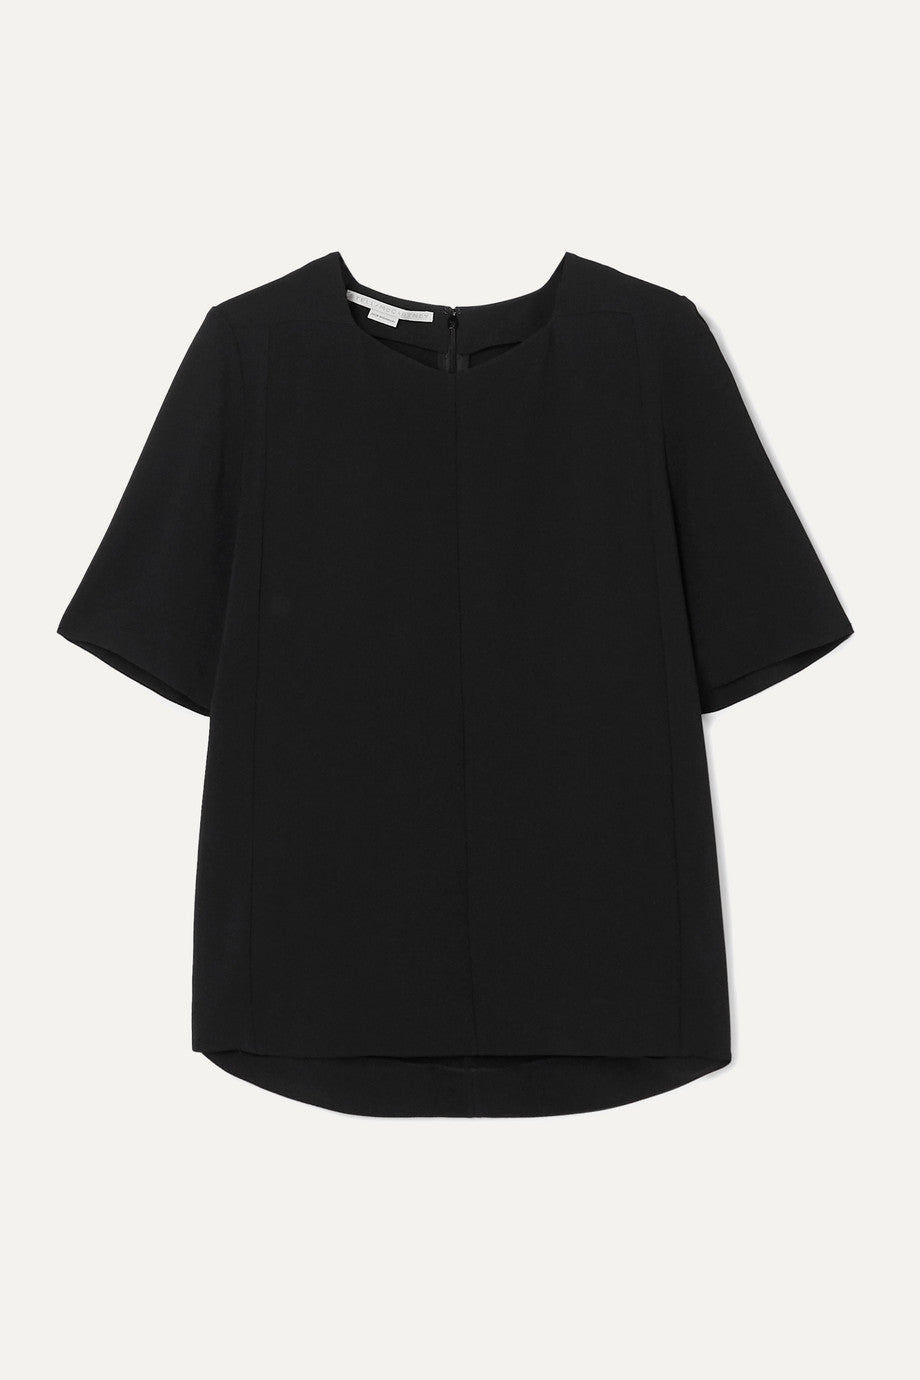 Stella McCartney - Black cady blouse top